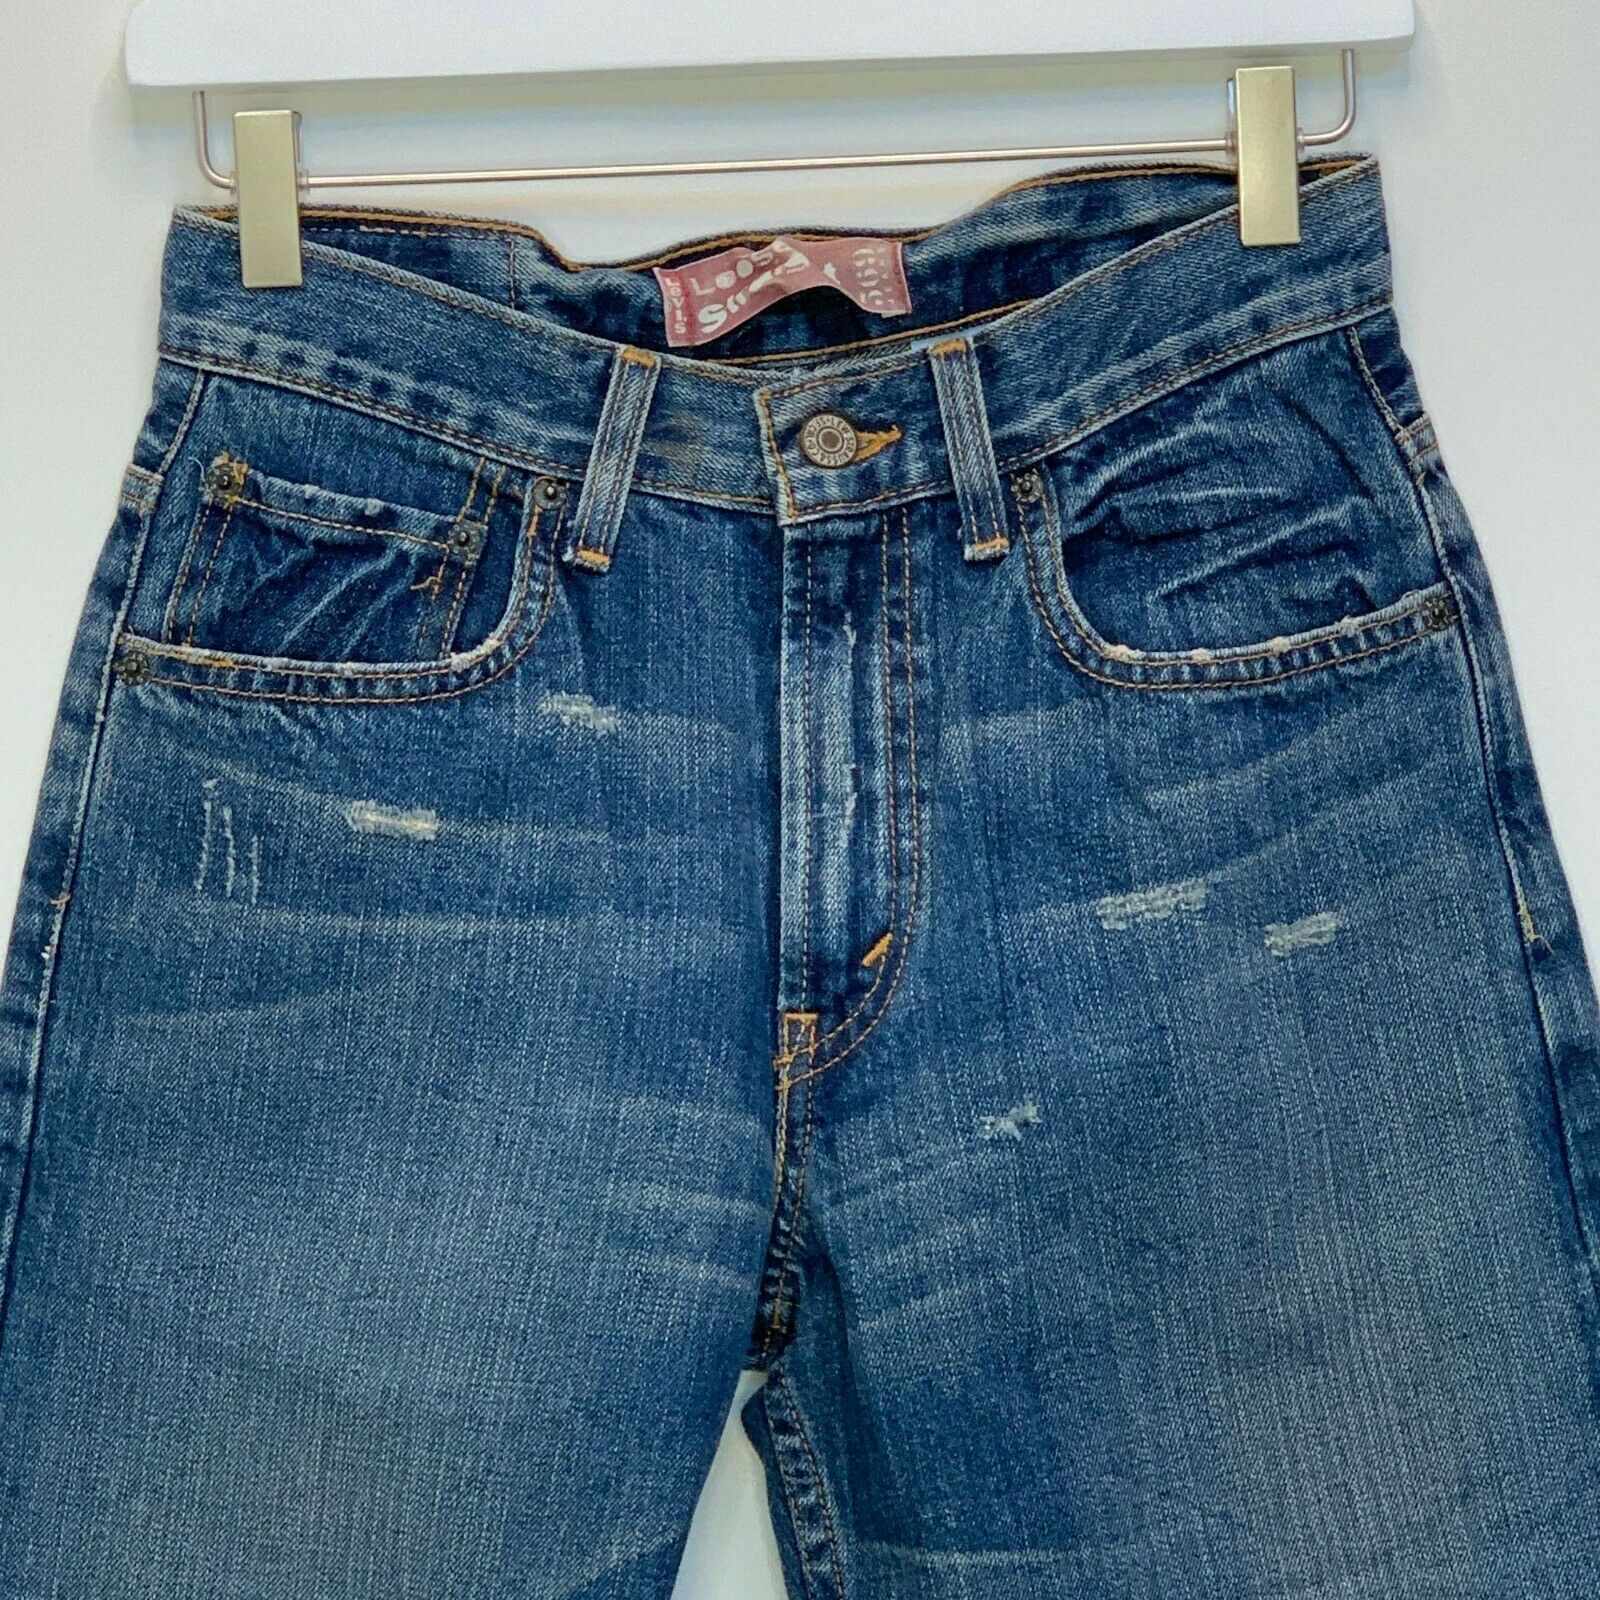 Primary image for Levi's 569 Boys Loose Straight Fit Blue Jeans Size 14